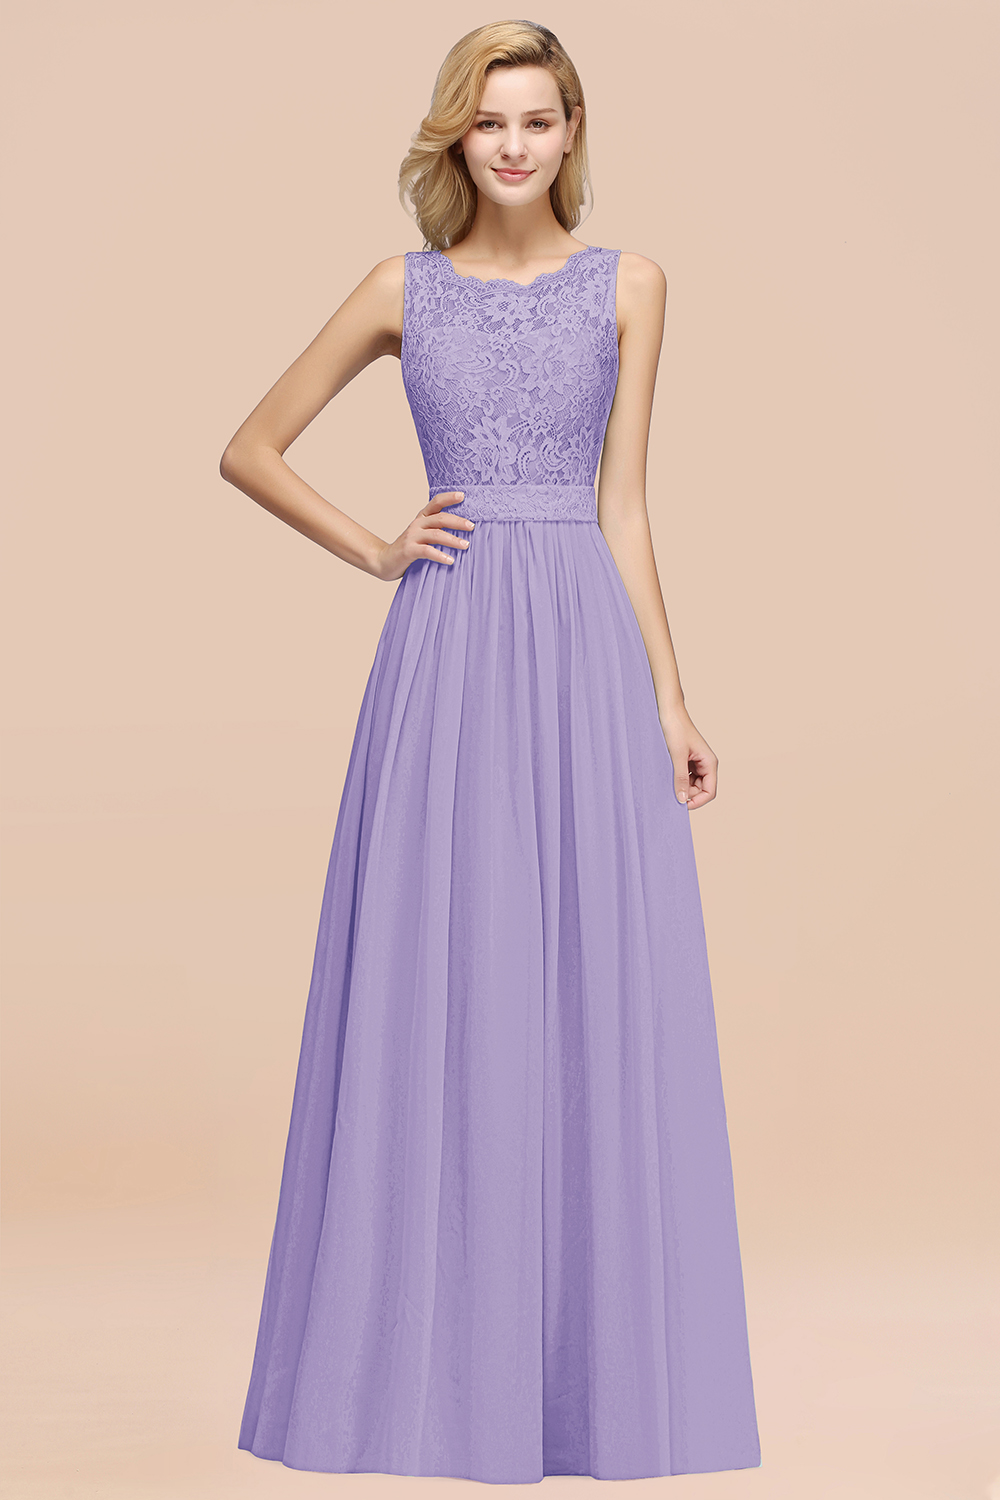 BMbridal Elegant Chiffon Lace Scalloped Sleeveless Ruffle Bridesmaid Dresses